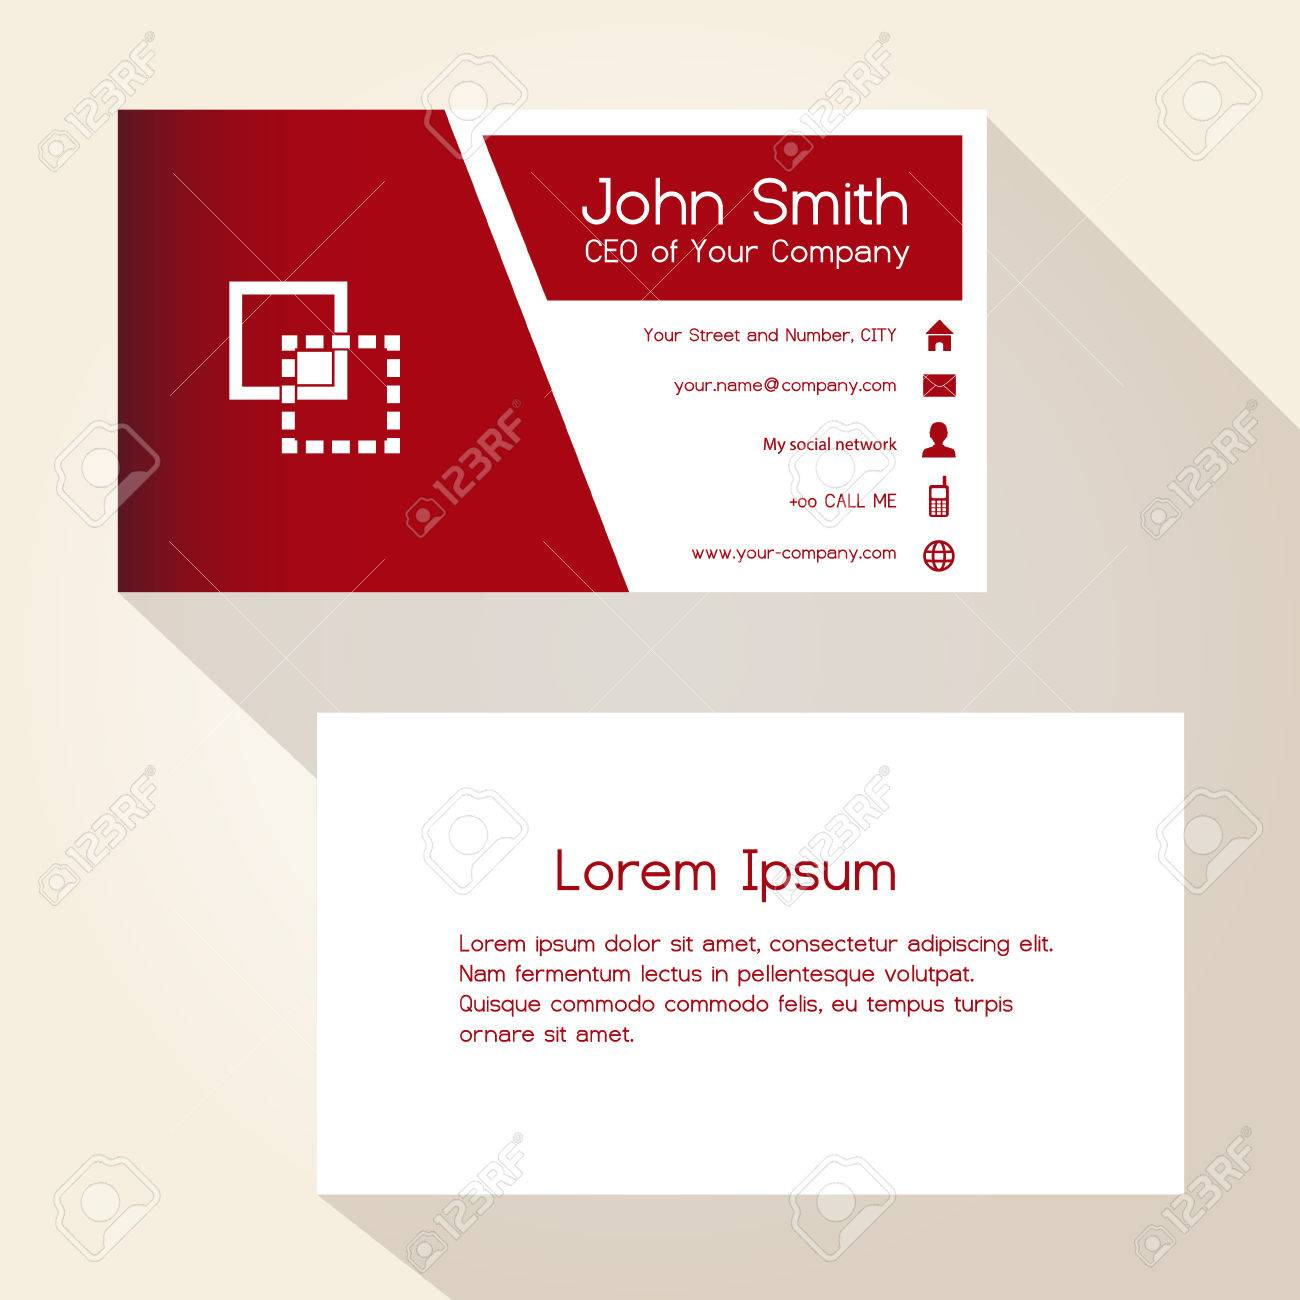 Simple Red And White Business Card Design Royalty Free Cliparts ...